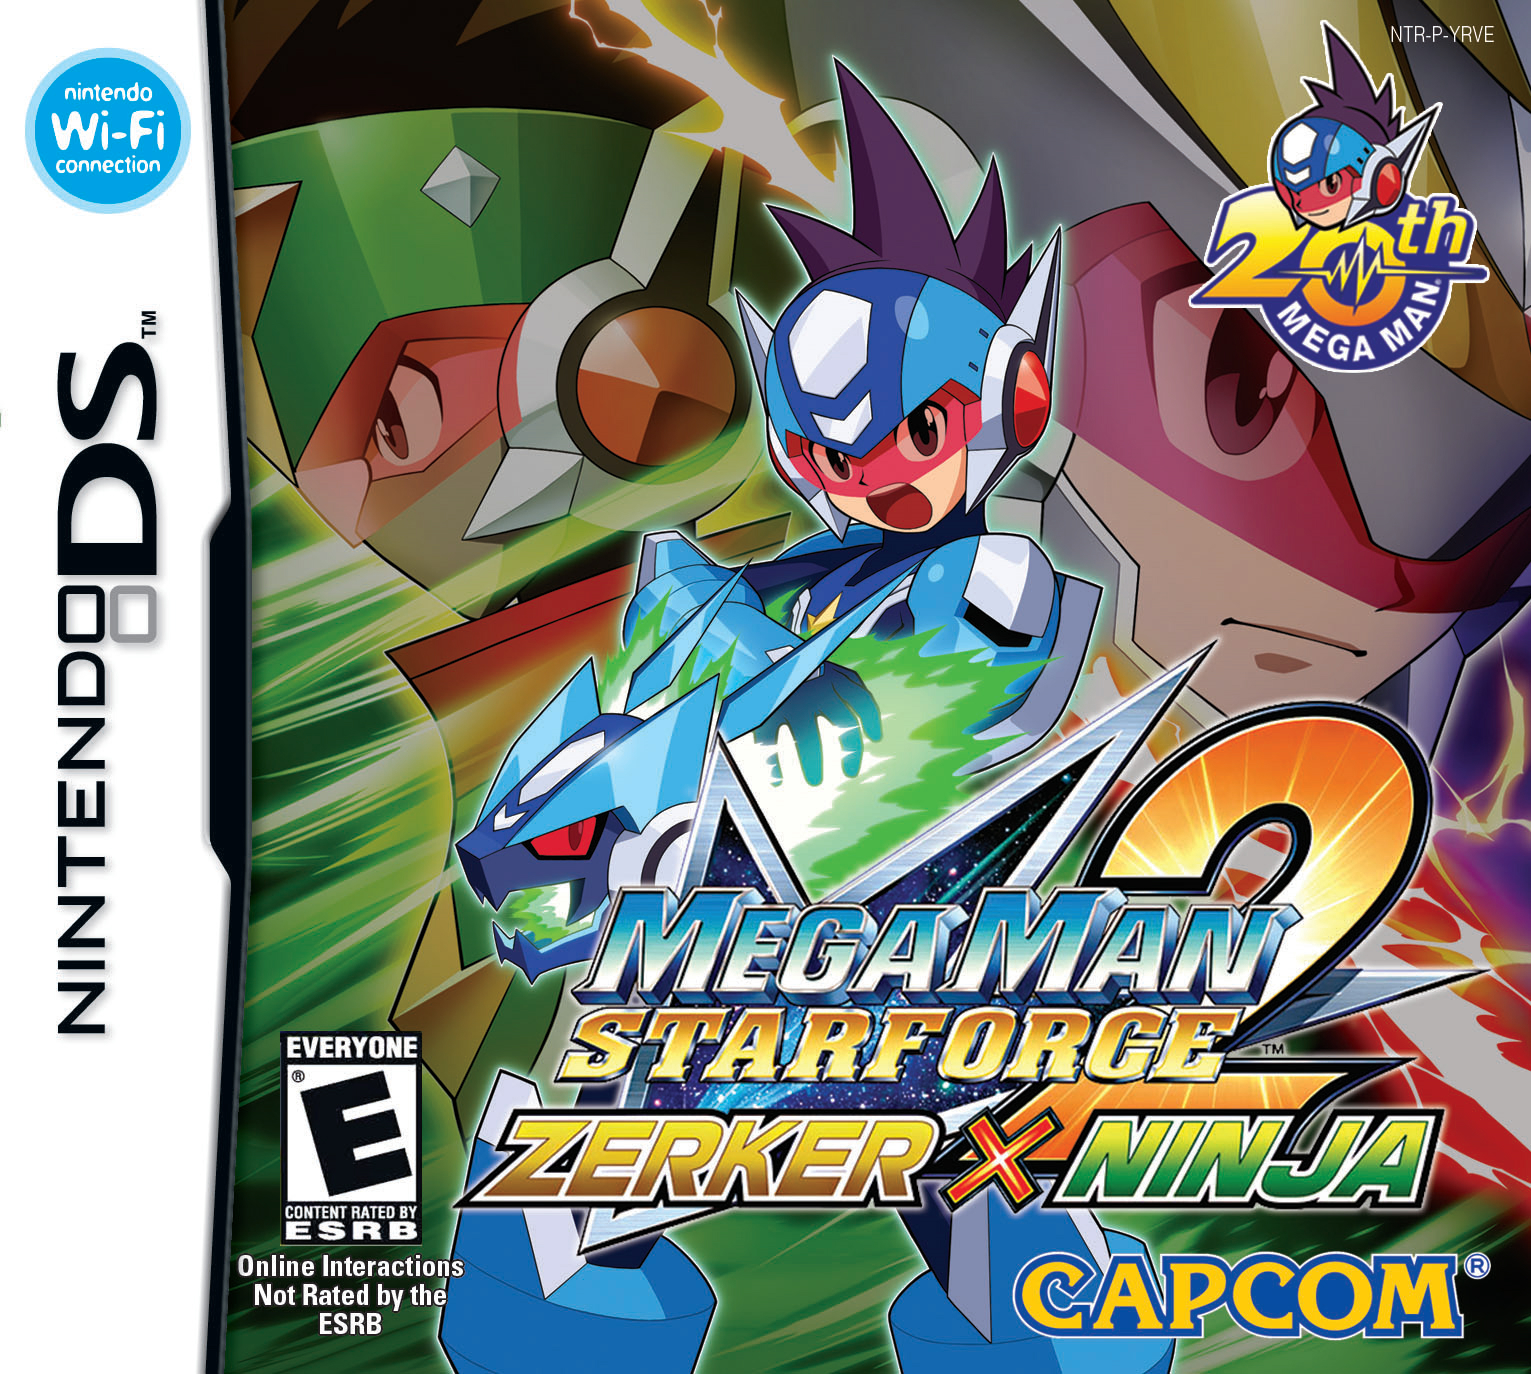 star force game free